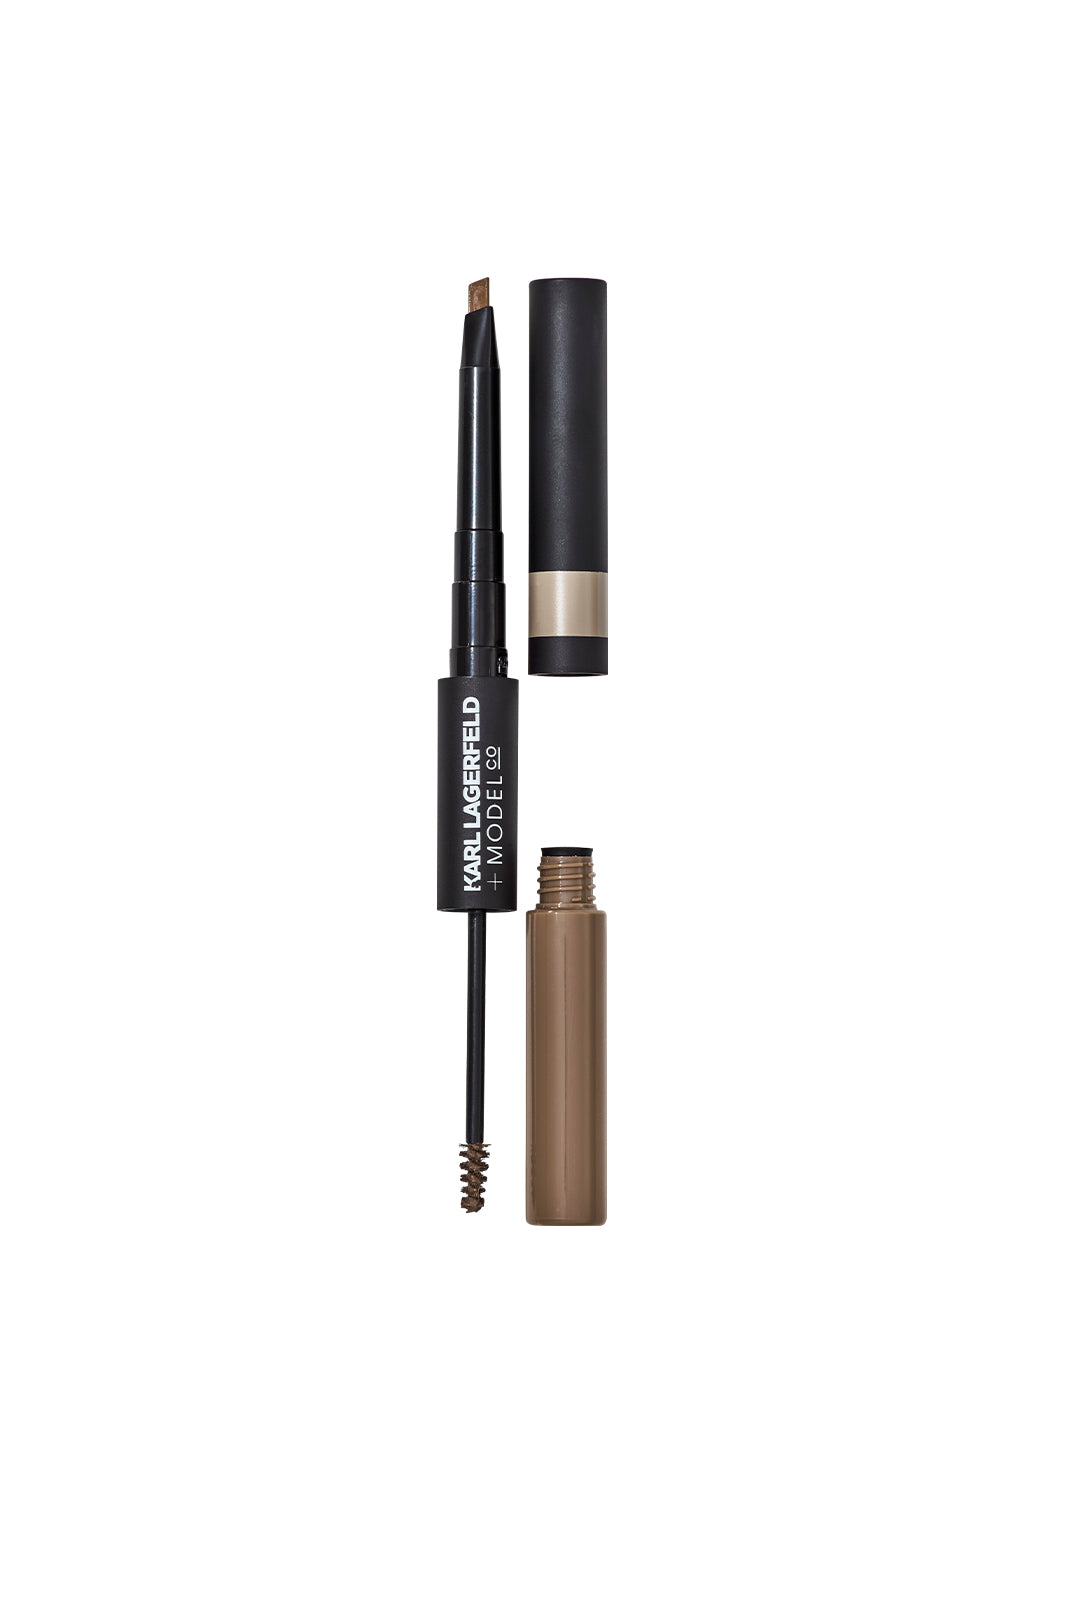 MORE BROWS FIBRE BROW GEL & CRAYON DUO